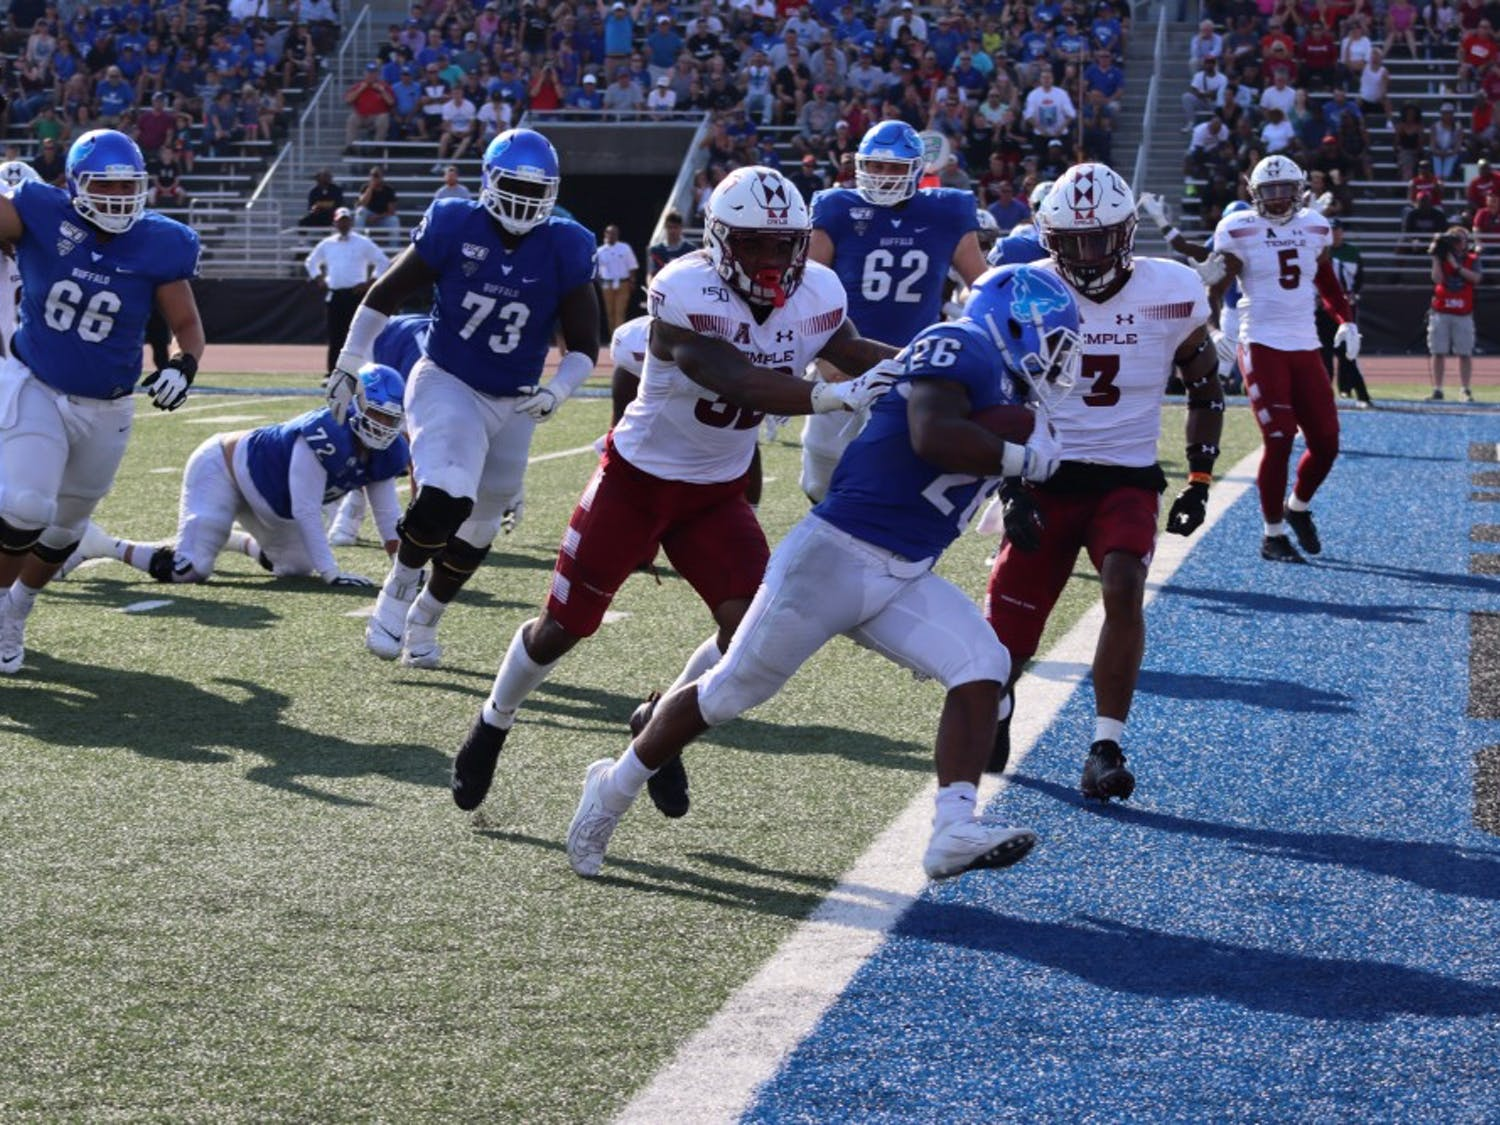 Running back Jaret Patterson scores his first of two rushing touchdowns on the day against the Temple Owls.